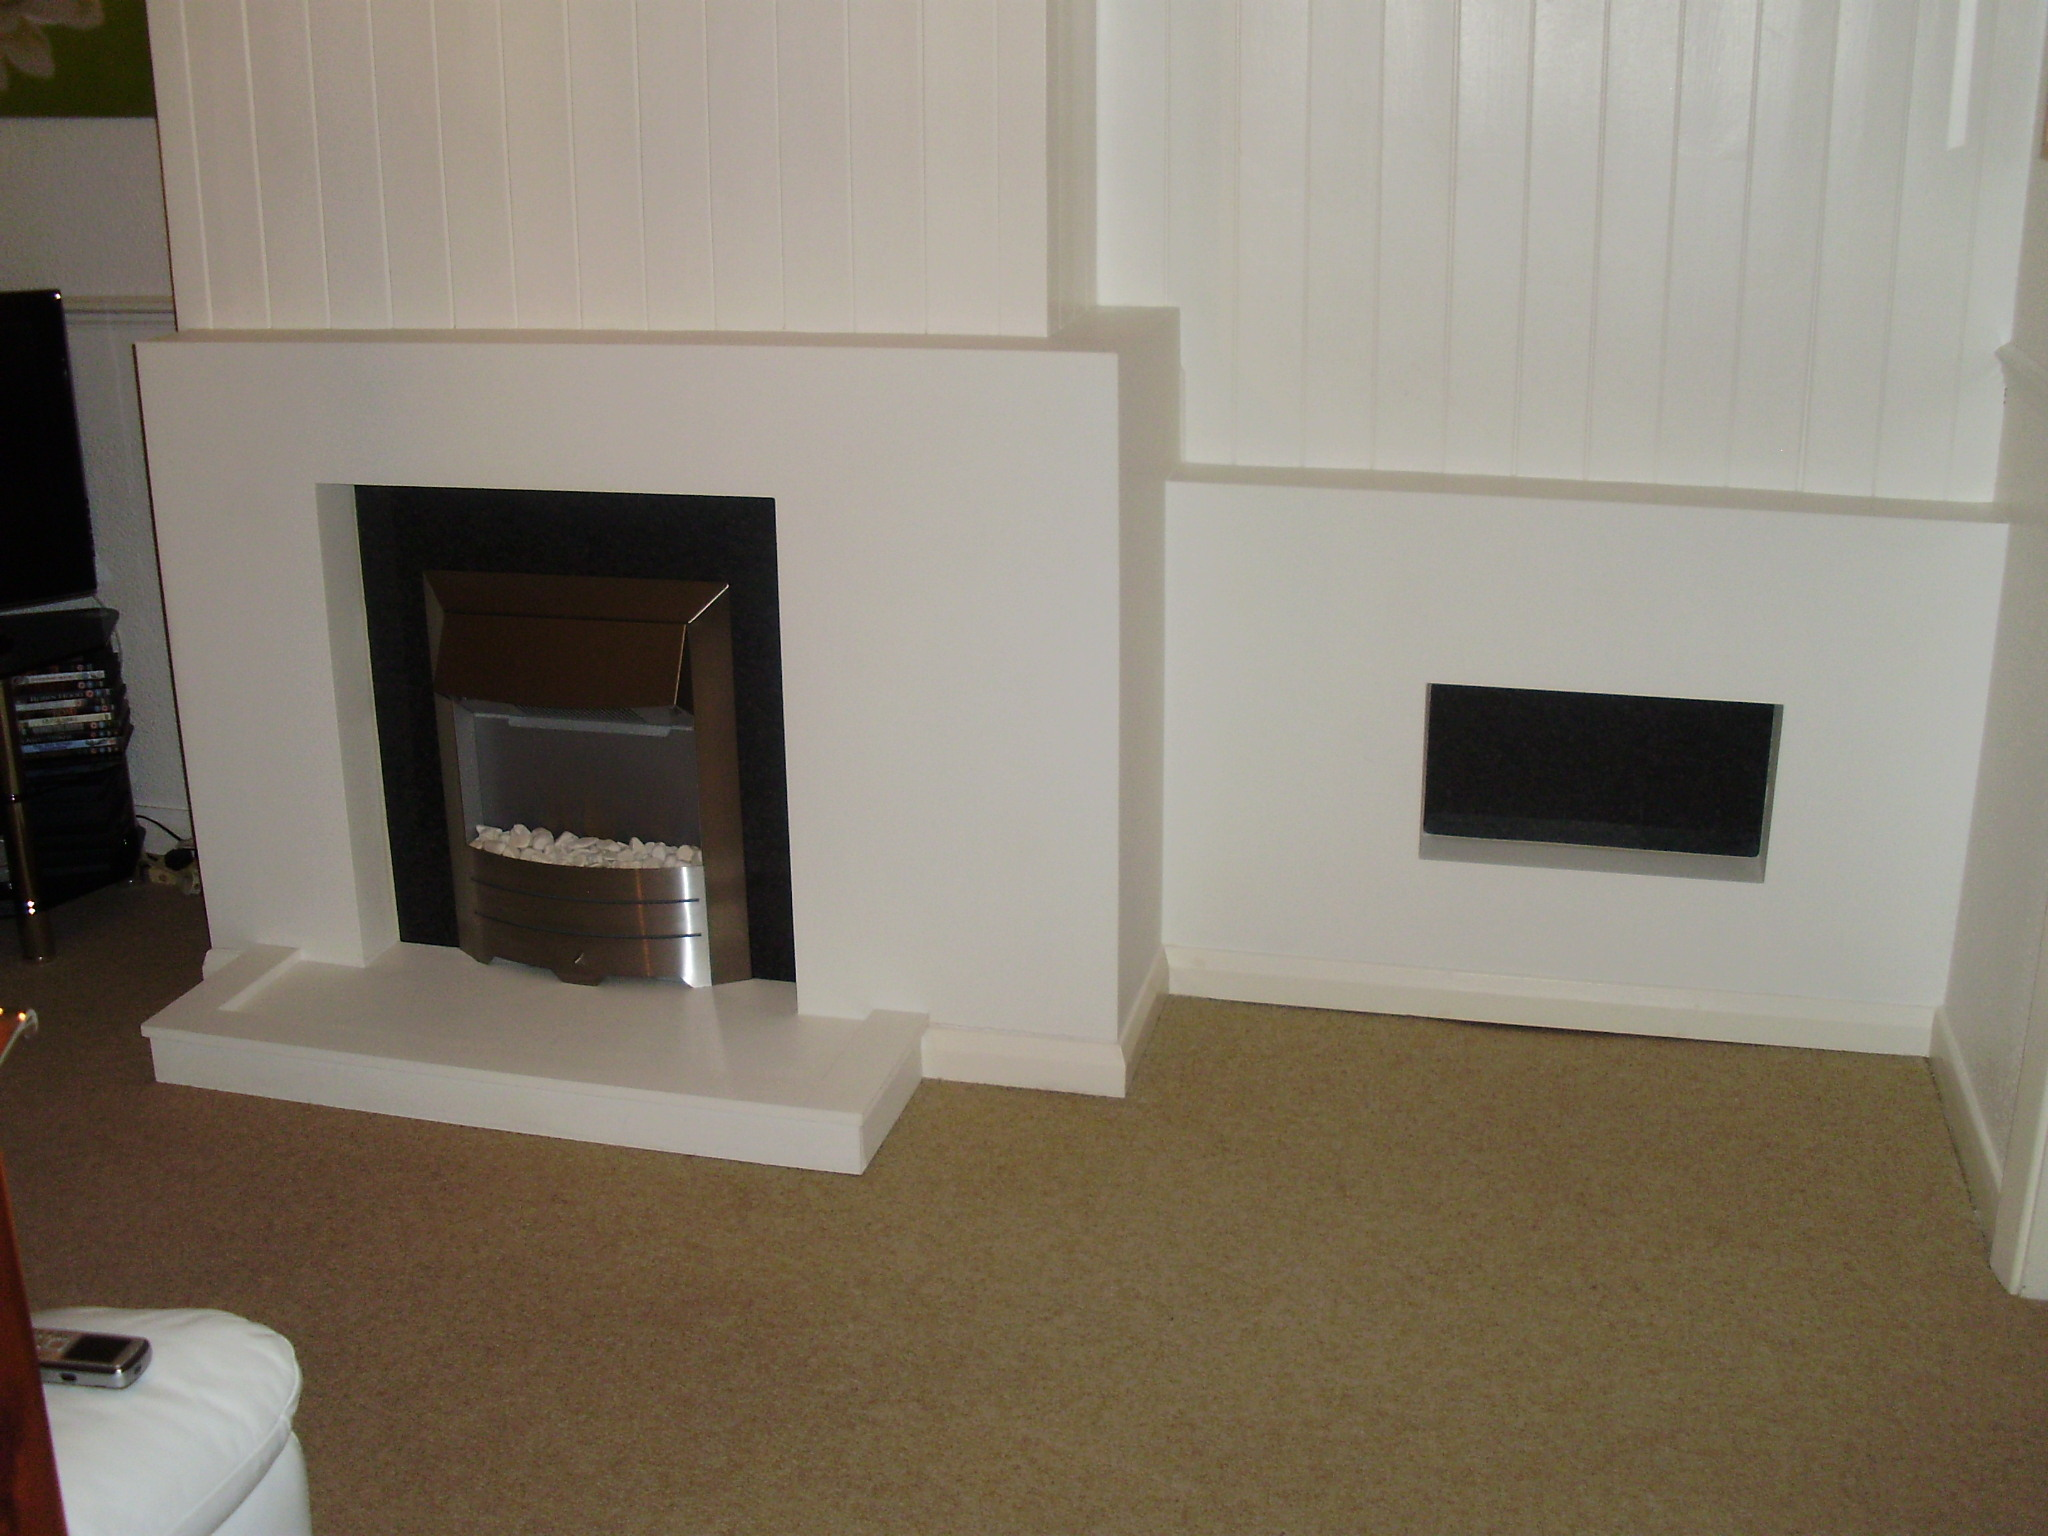 Nottingham Plastering Fireplace 2